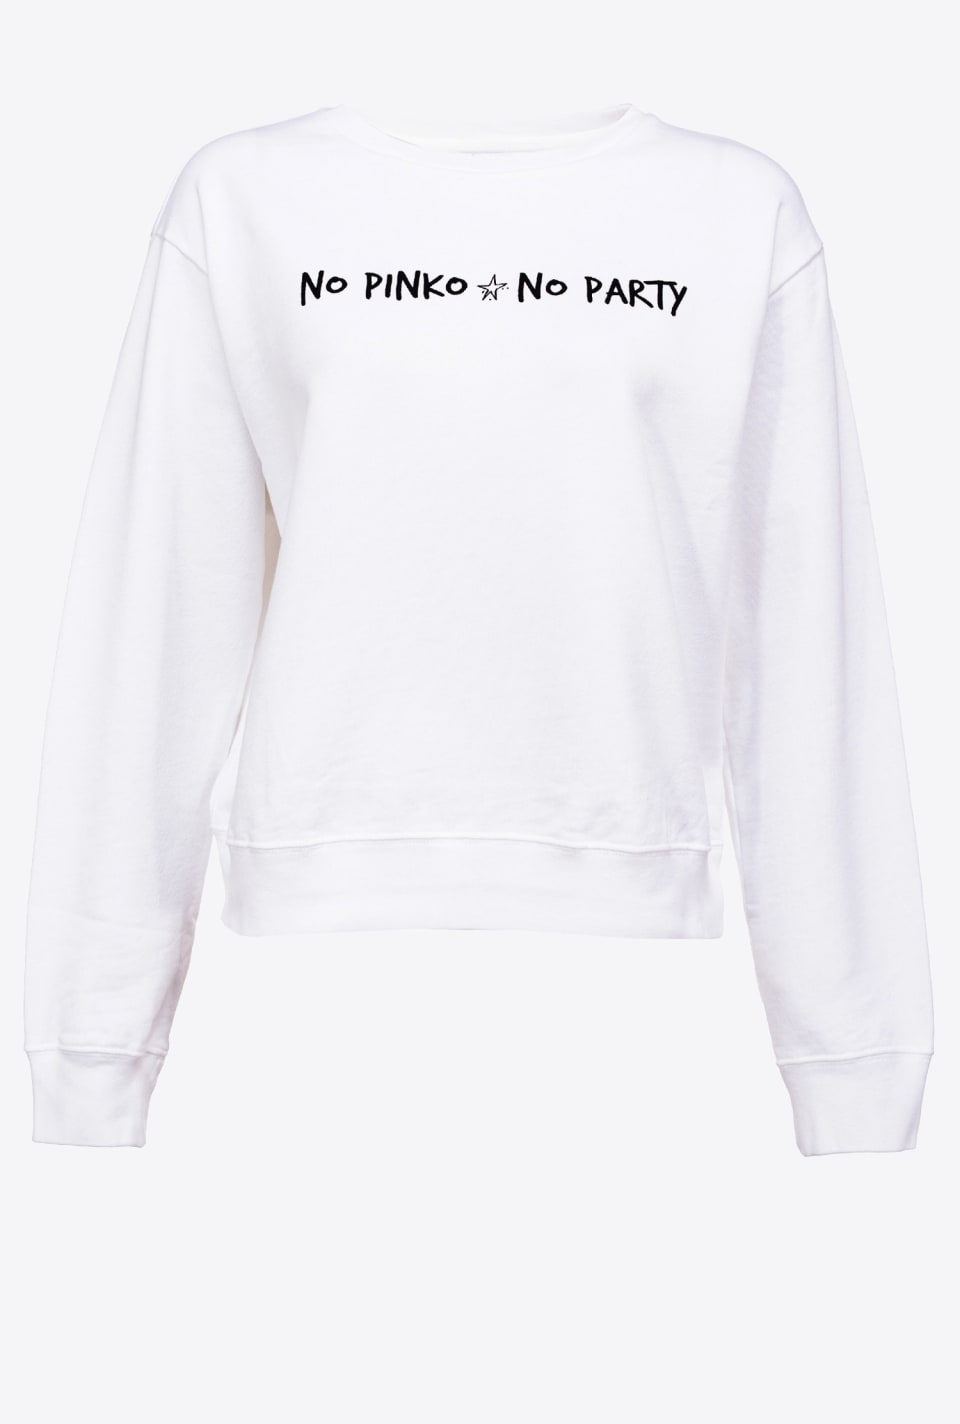 Sudadera No PINKO No Party - Pinko